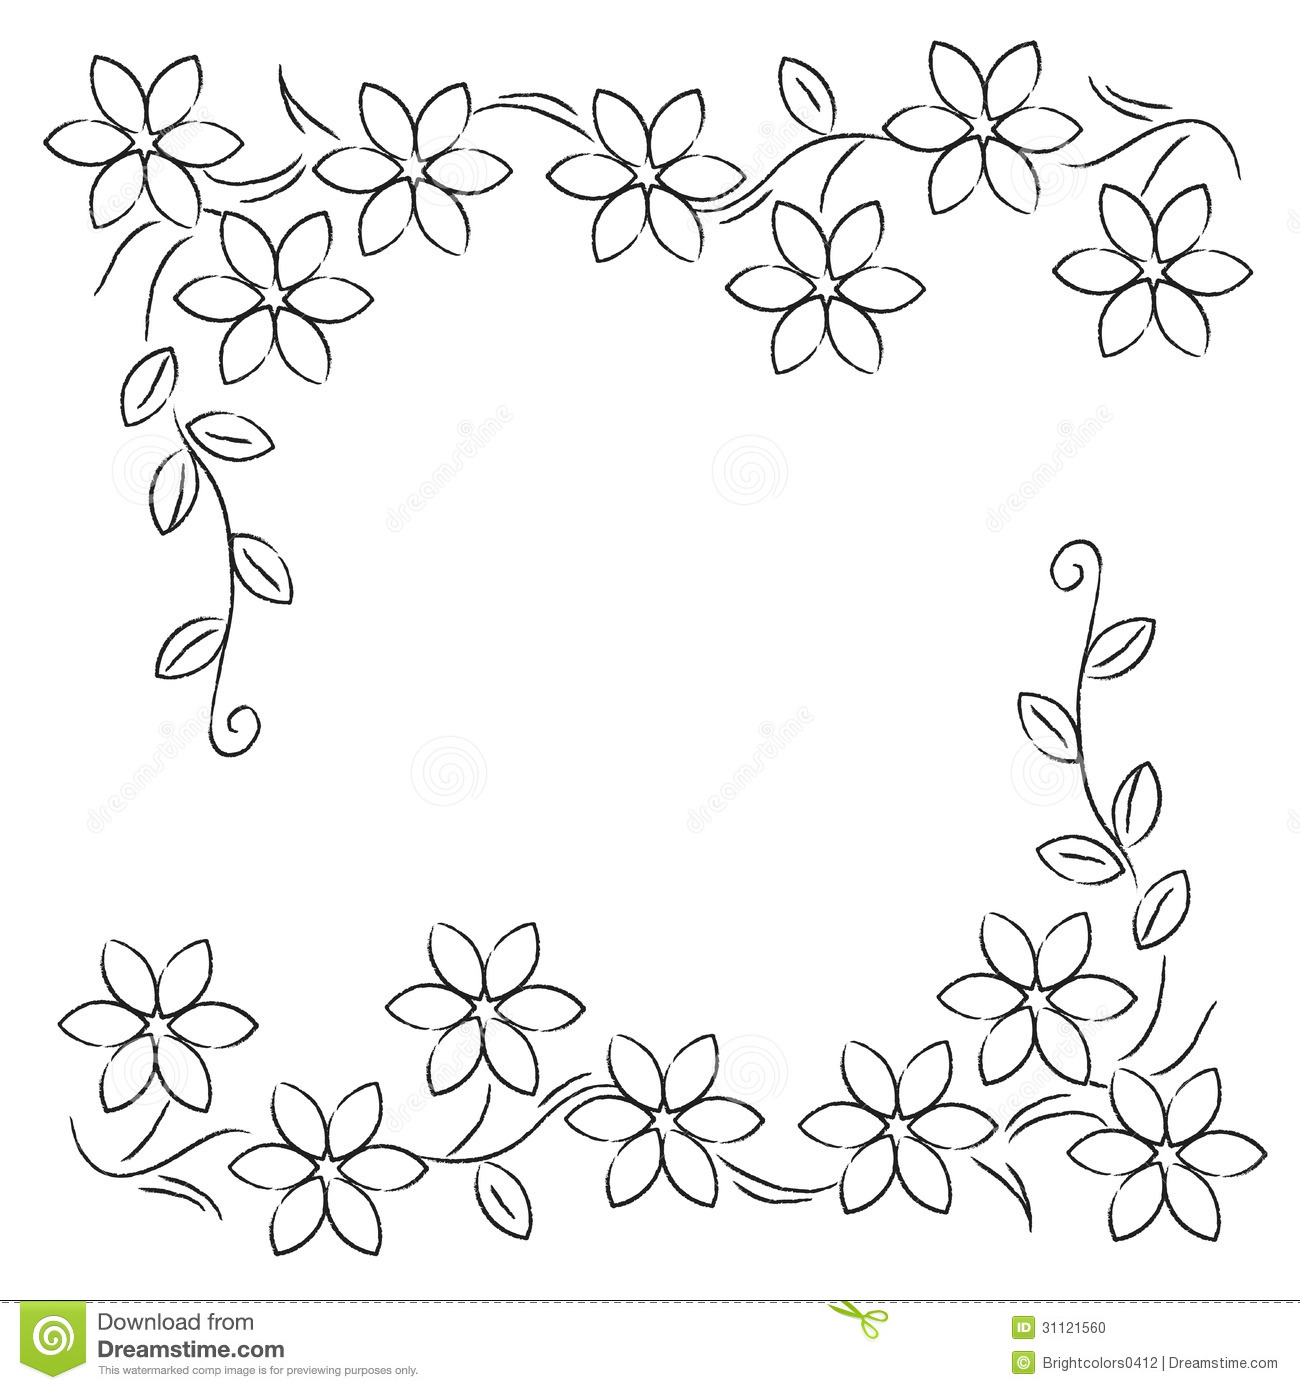 Decorative Black Flower Border Stock Image: Flower Line Border Black White Stock Illustration